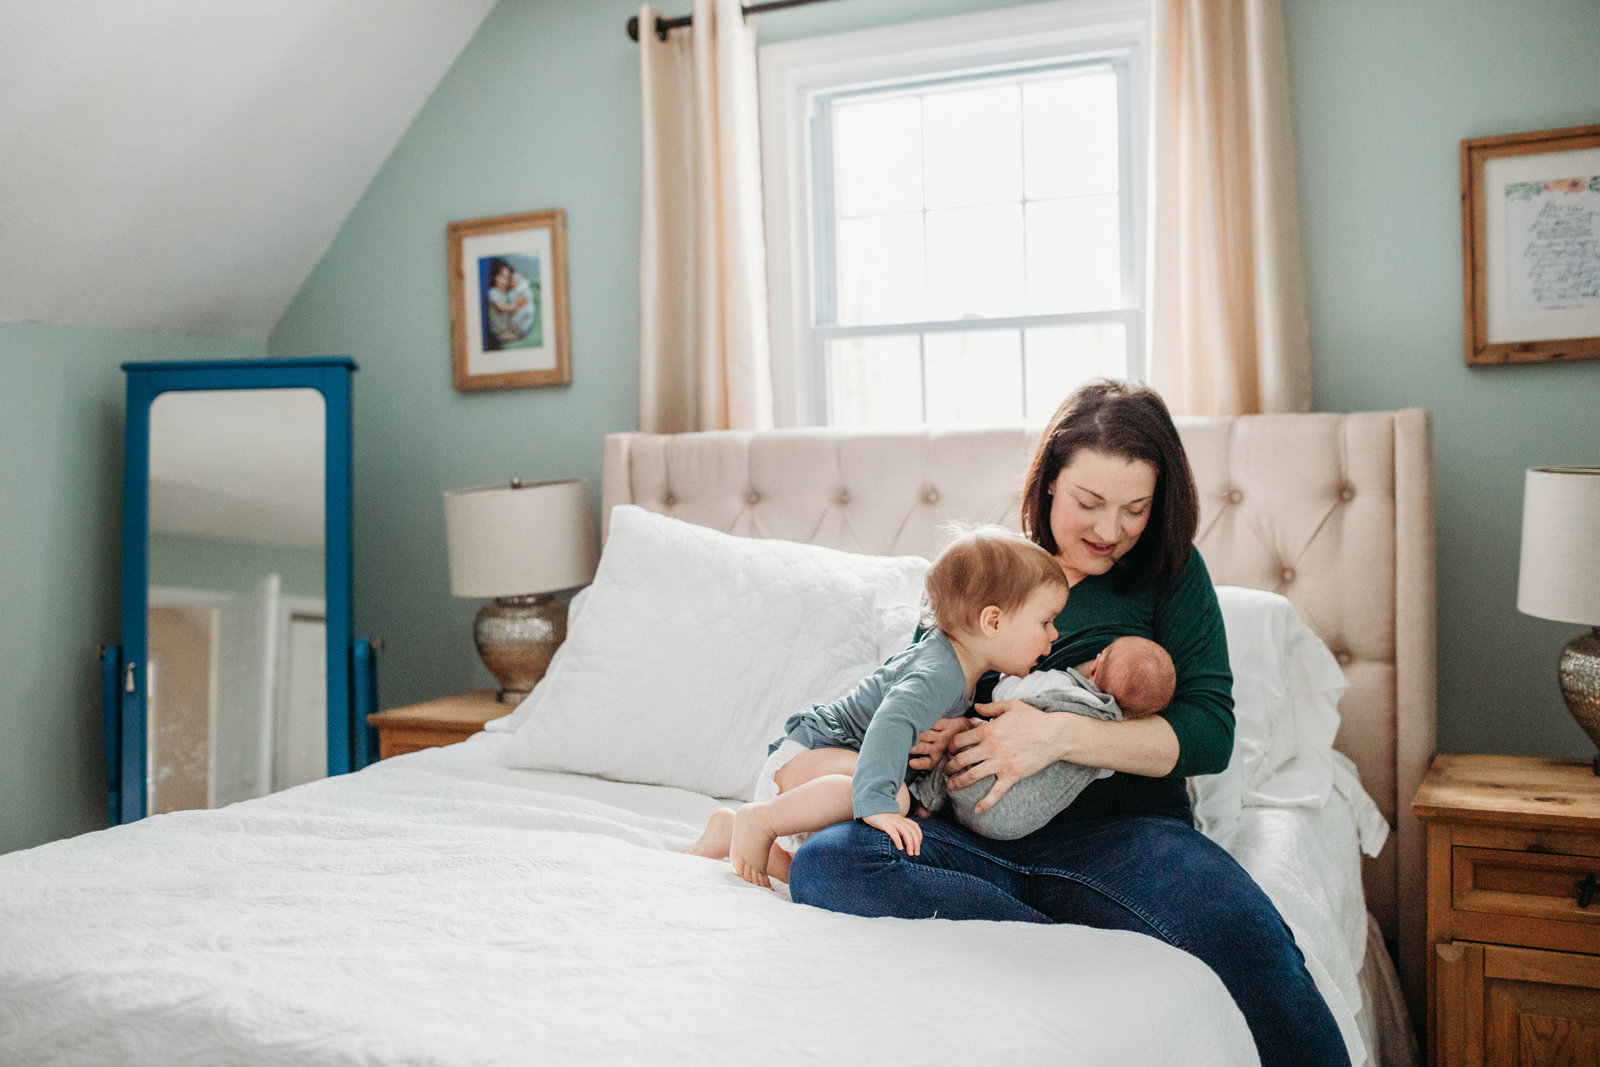 mother in mint green room holds baby boy with toddler on bed in bolton ma